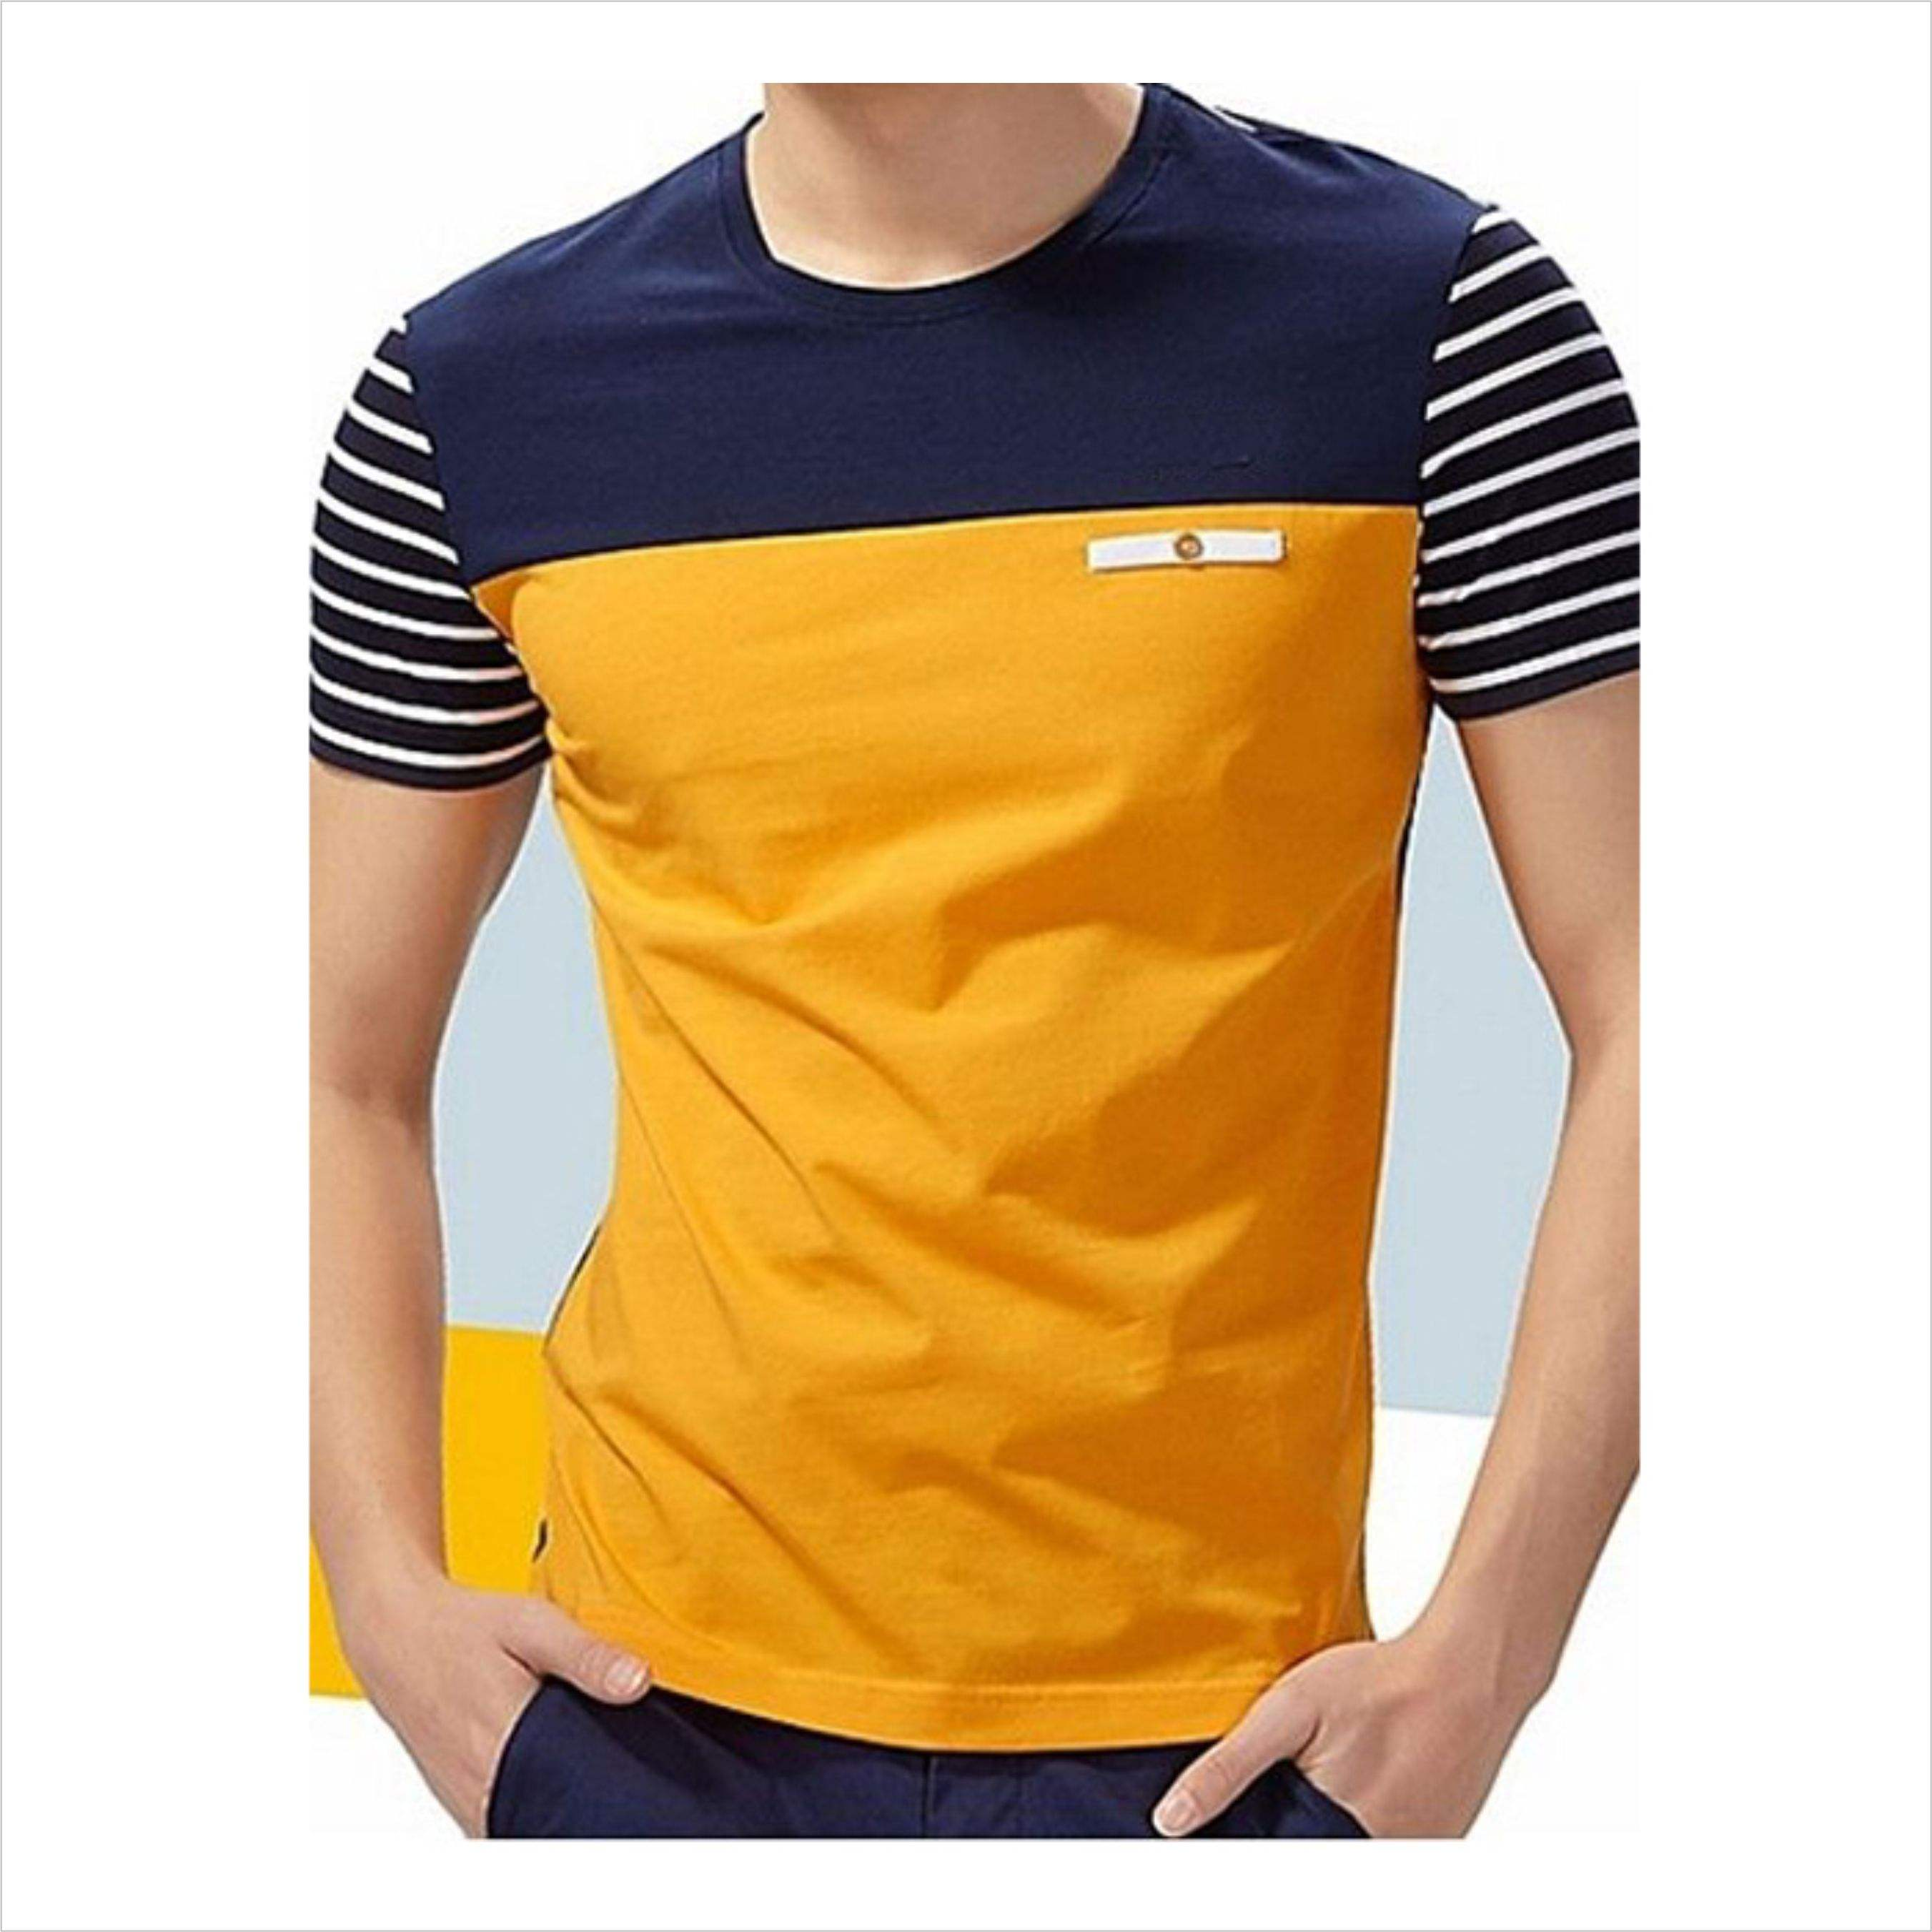 Pakistan factory wholesale clothing manufacturers overseas T Shirts